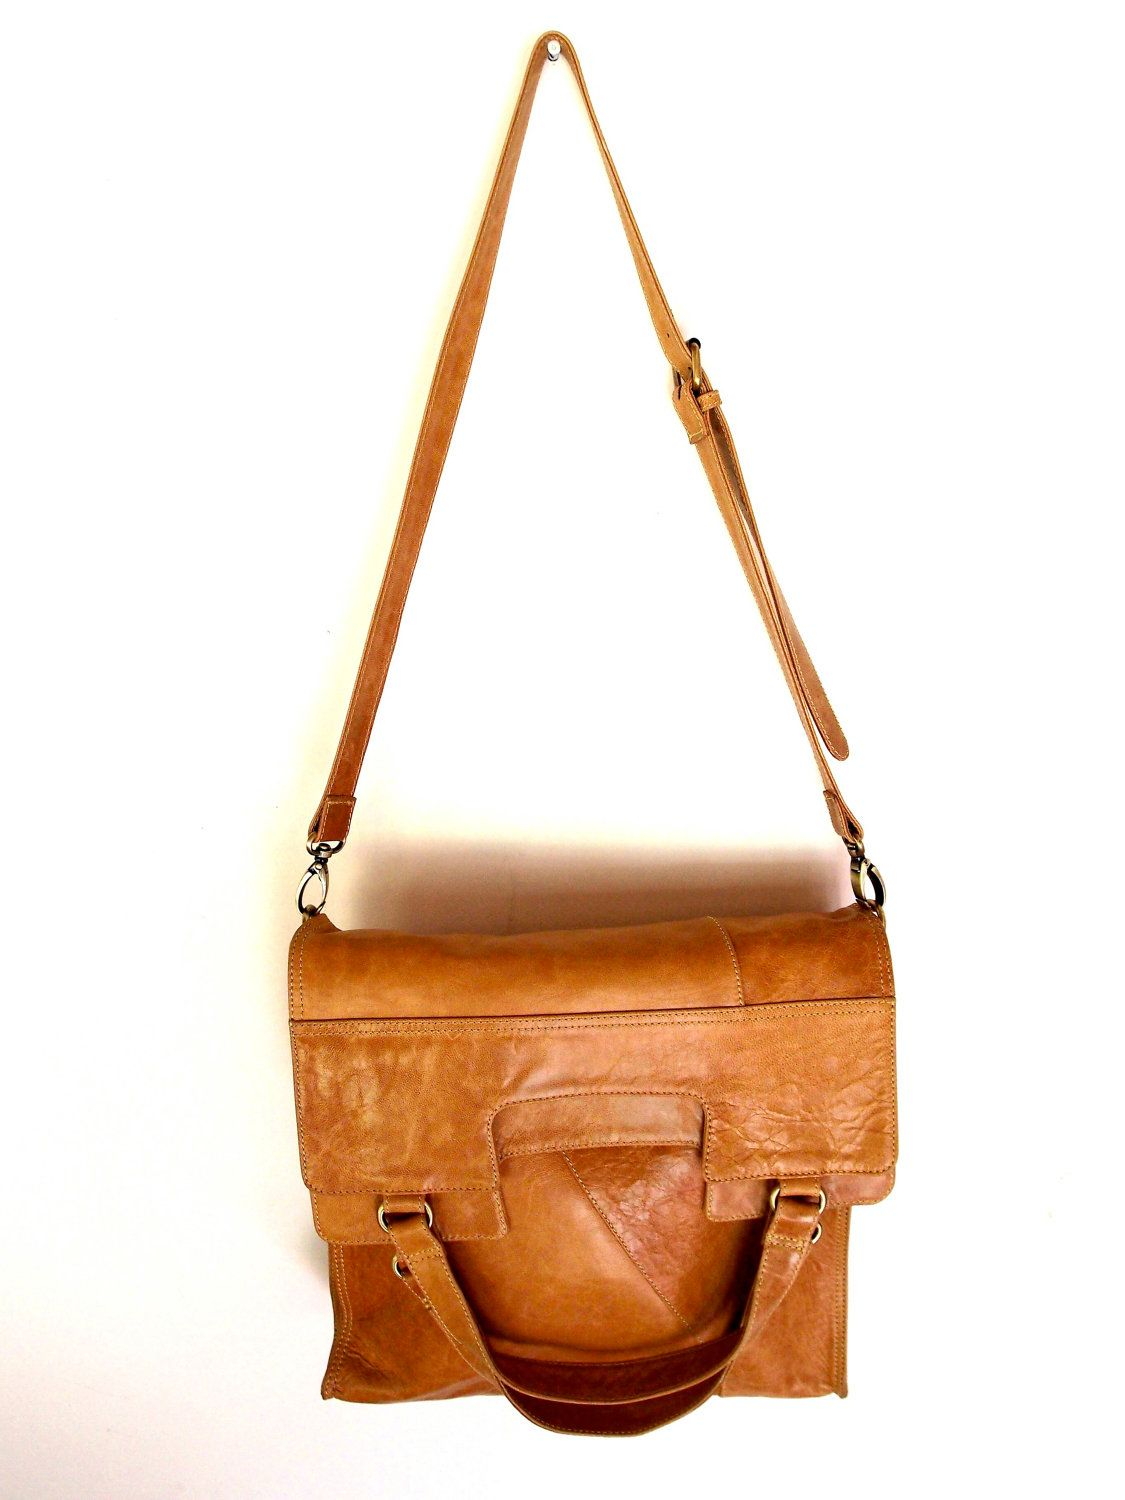 570d3270c On my Christmas list! (MI-VIDA. Fold-over shoulder leather bag / cross body  bag. Available in different leather colors.. $210.00, via Etsy.)